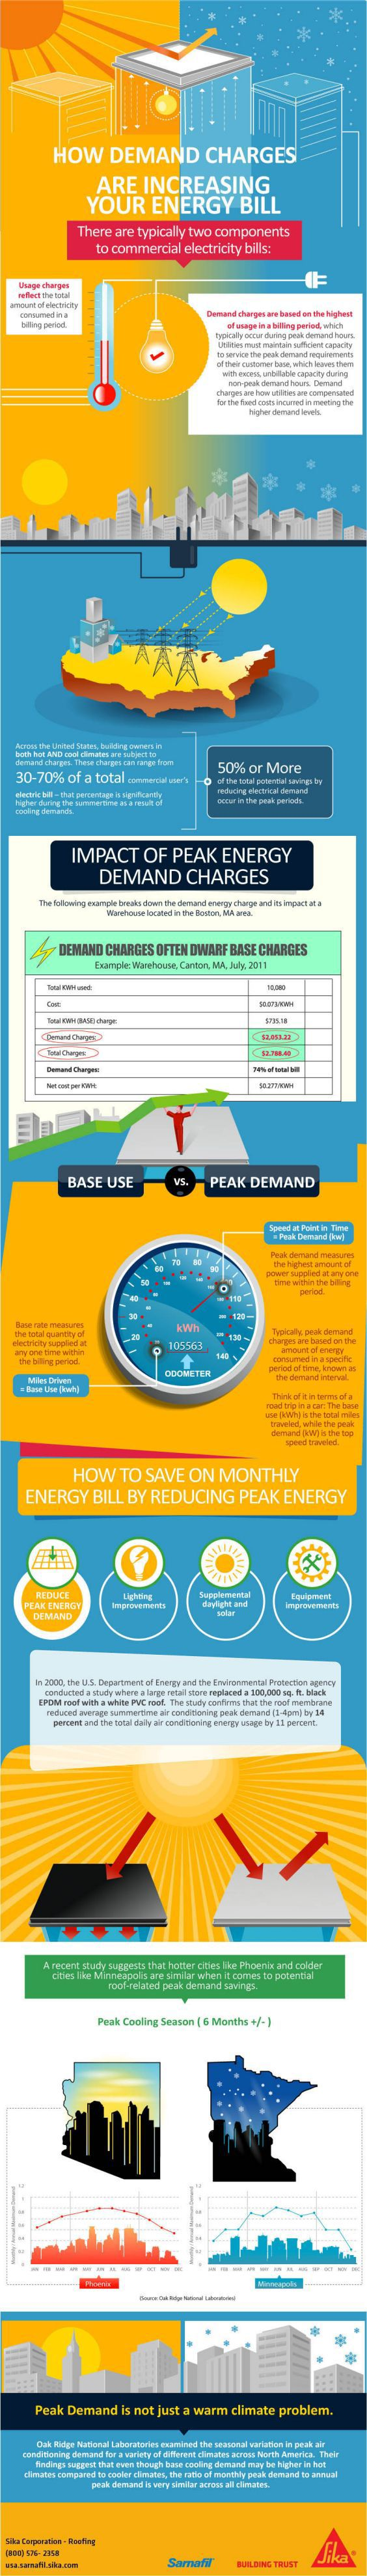 Peak Energy Demand Infographic